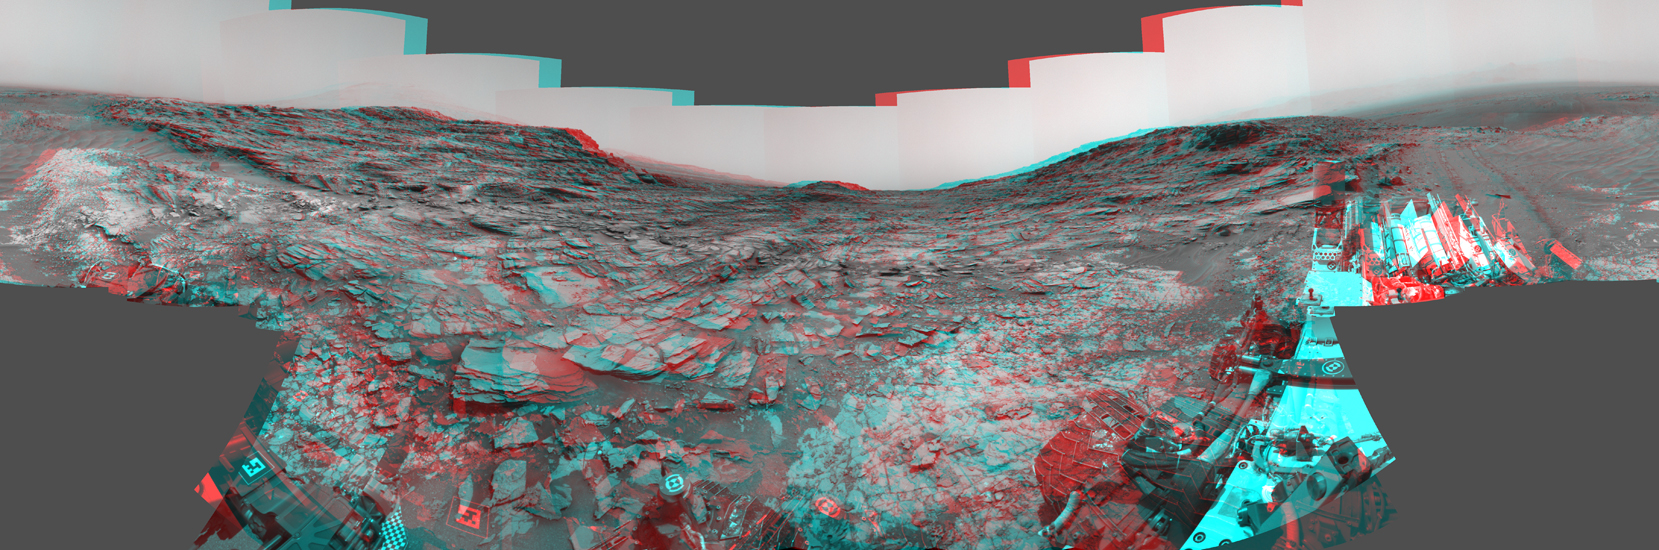 This stereo view from the Navigation Camera (Navcam) on NASA's Curiosity Mars rover shows a 360-degree panorama around the location where the rover spent its 1,000th Martian day, or sol, on Mars.